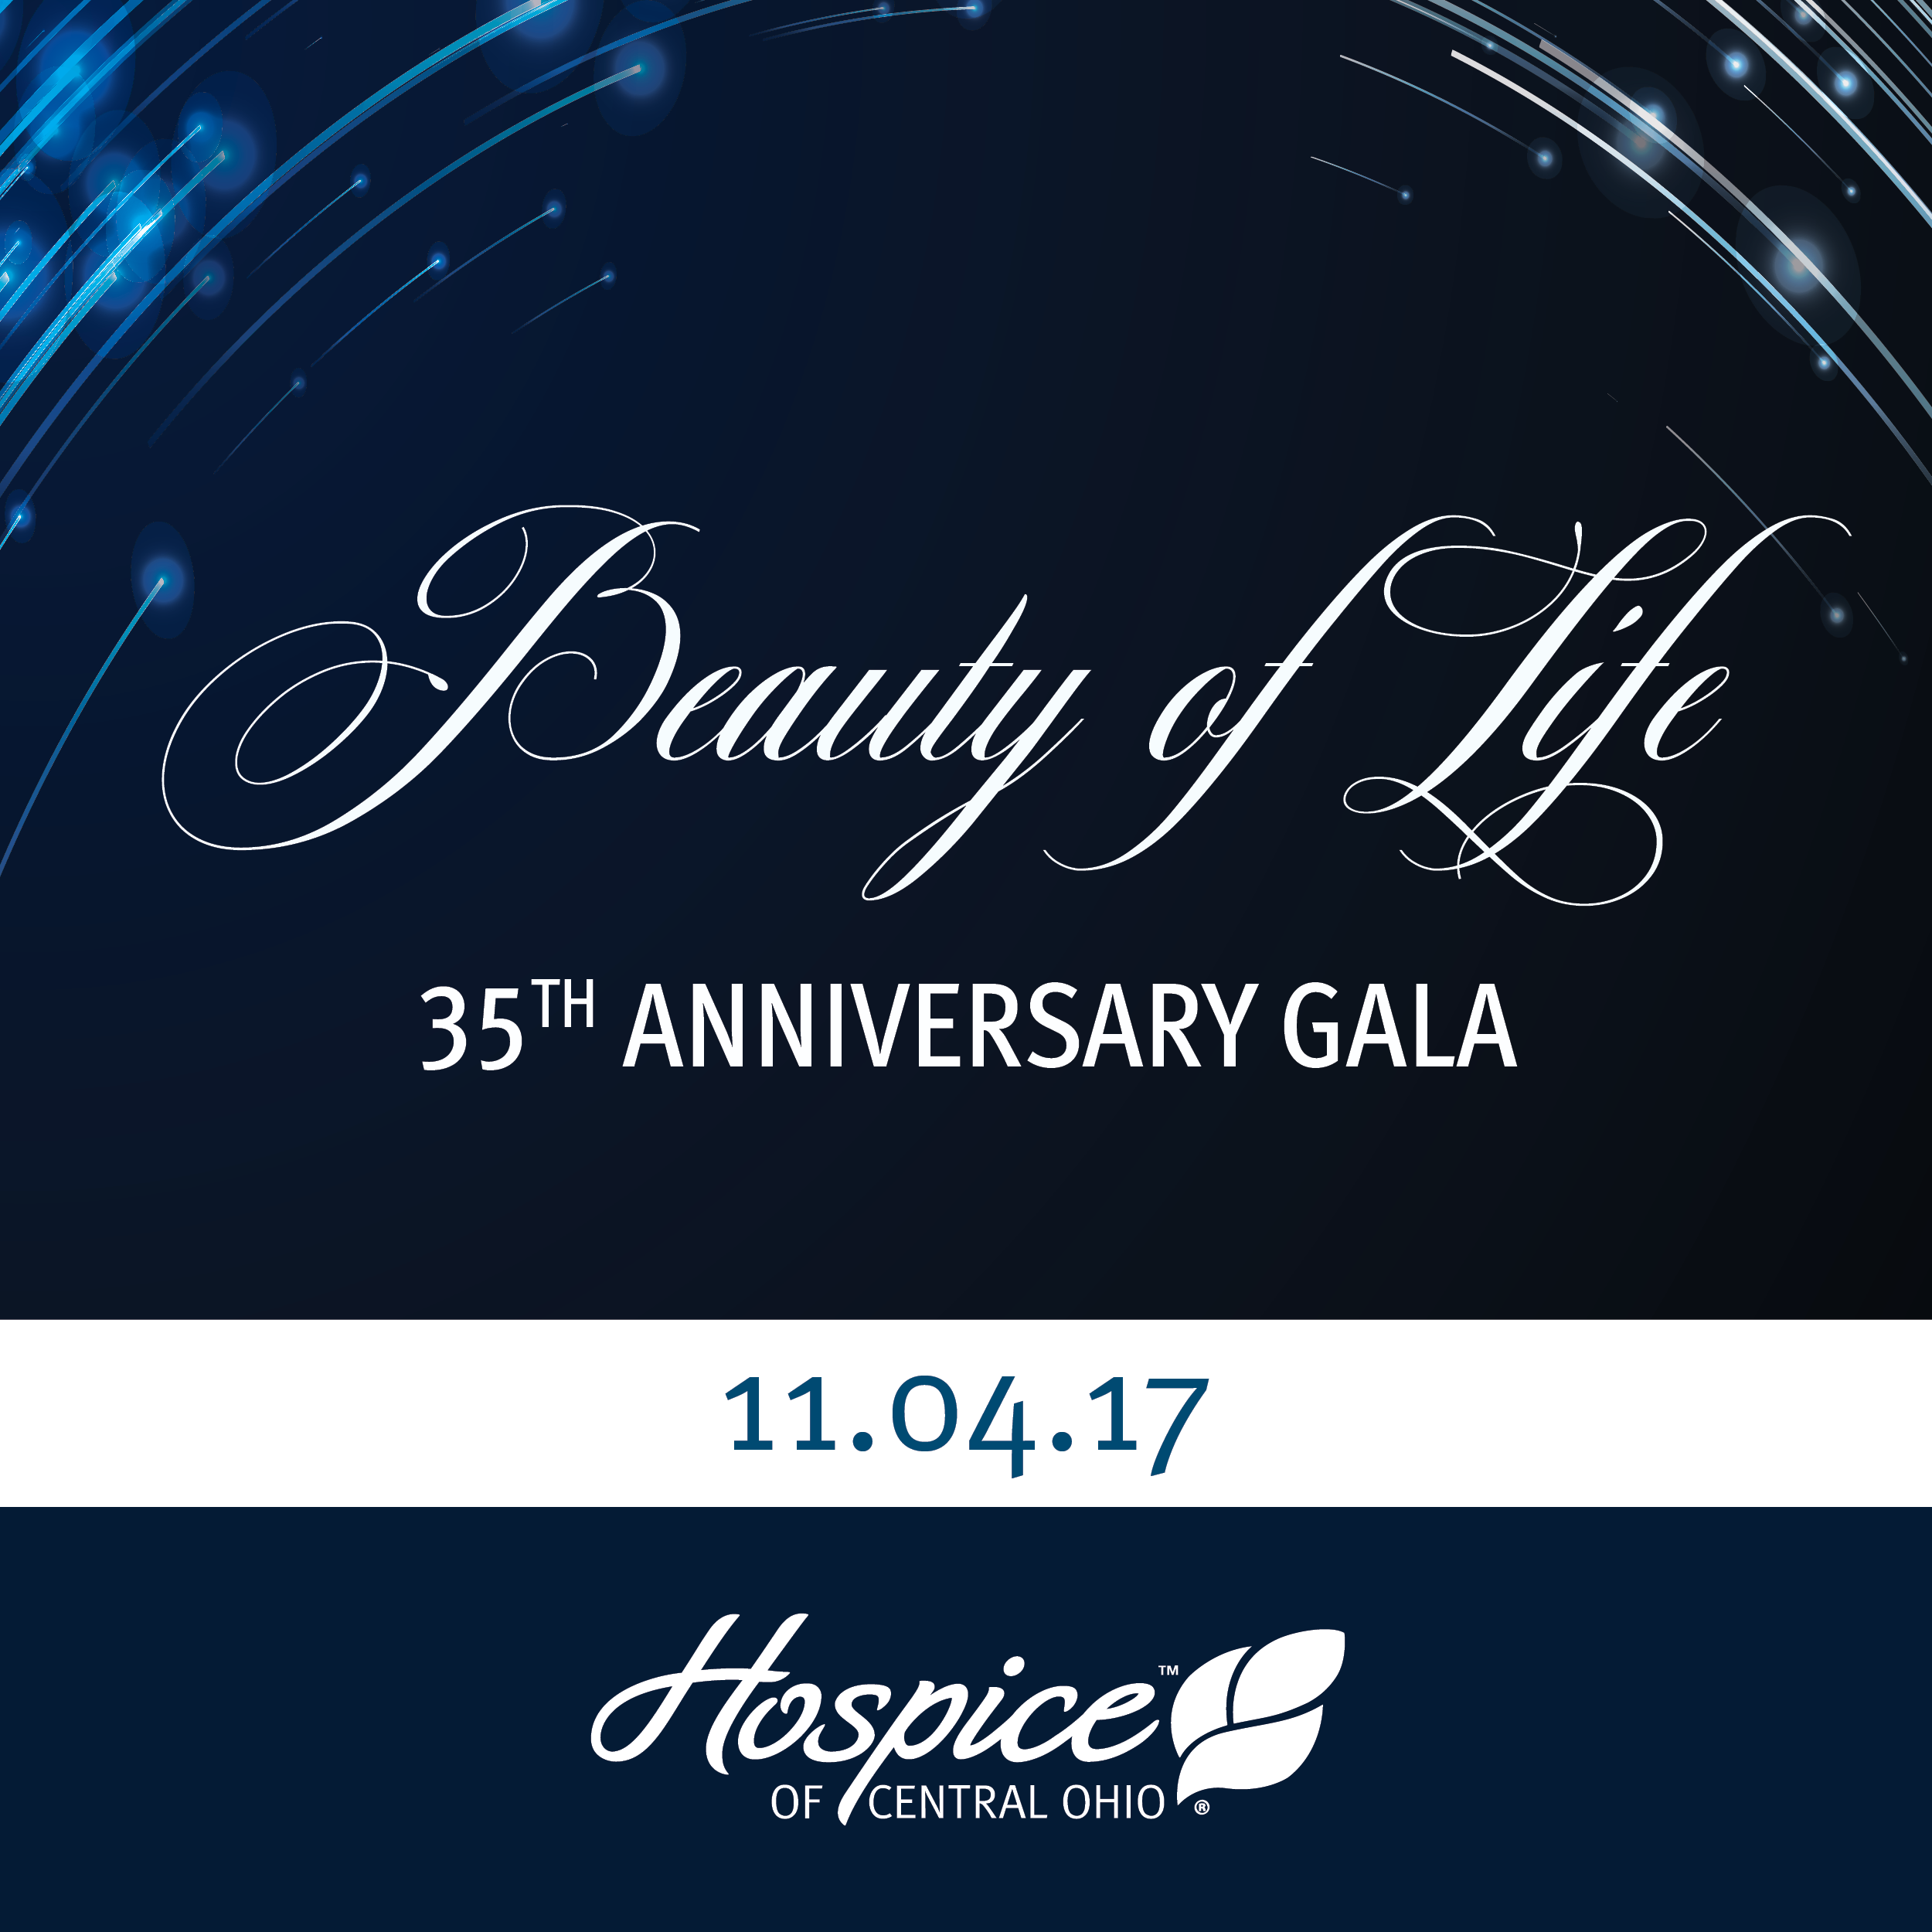 Beauty of Life Gala